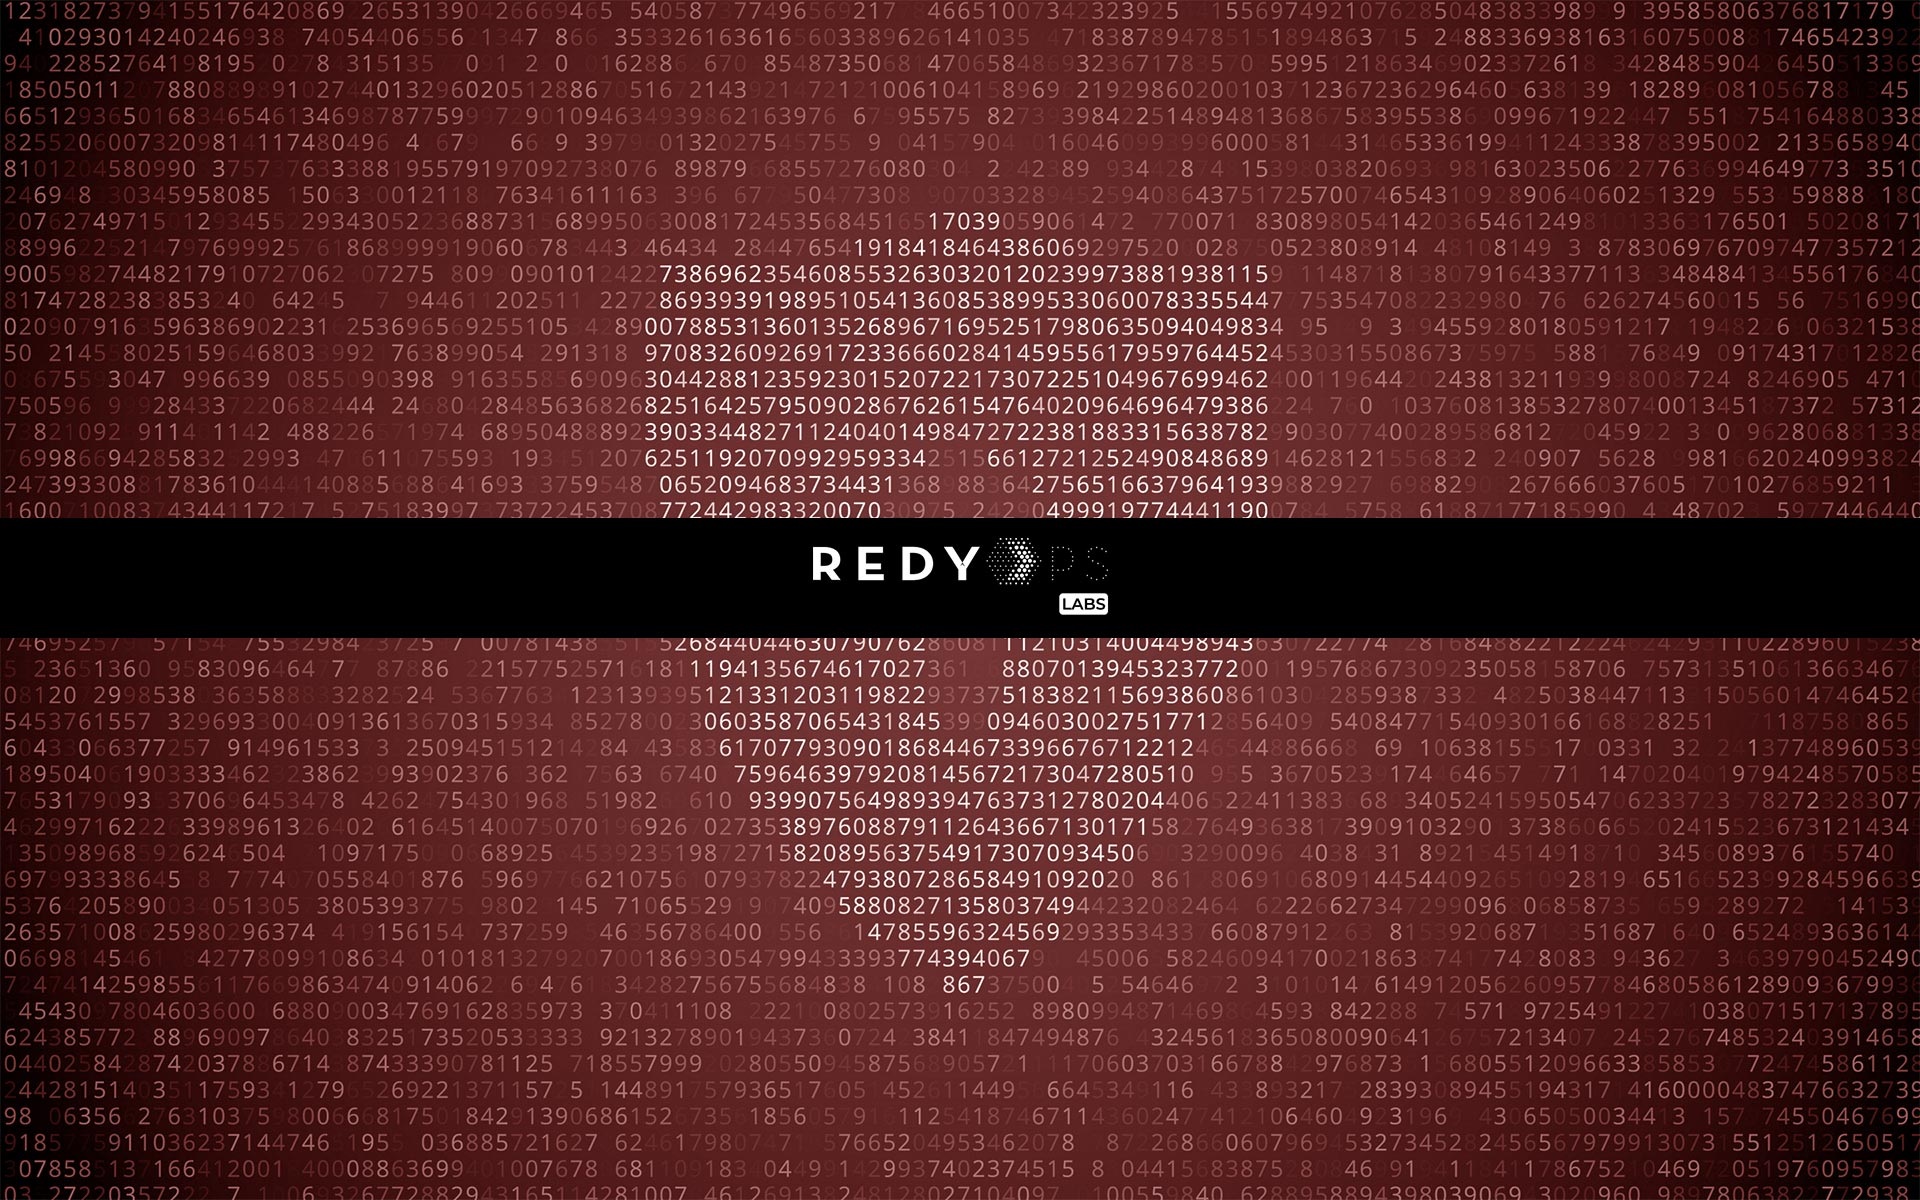 REDYOPS Labs